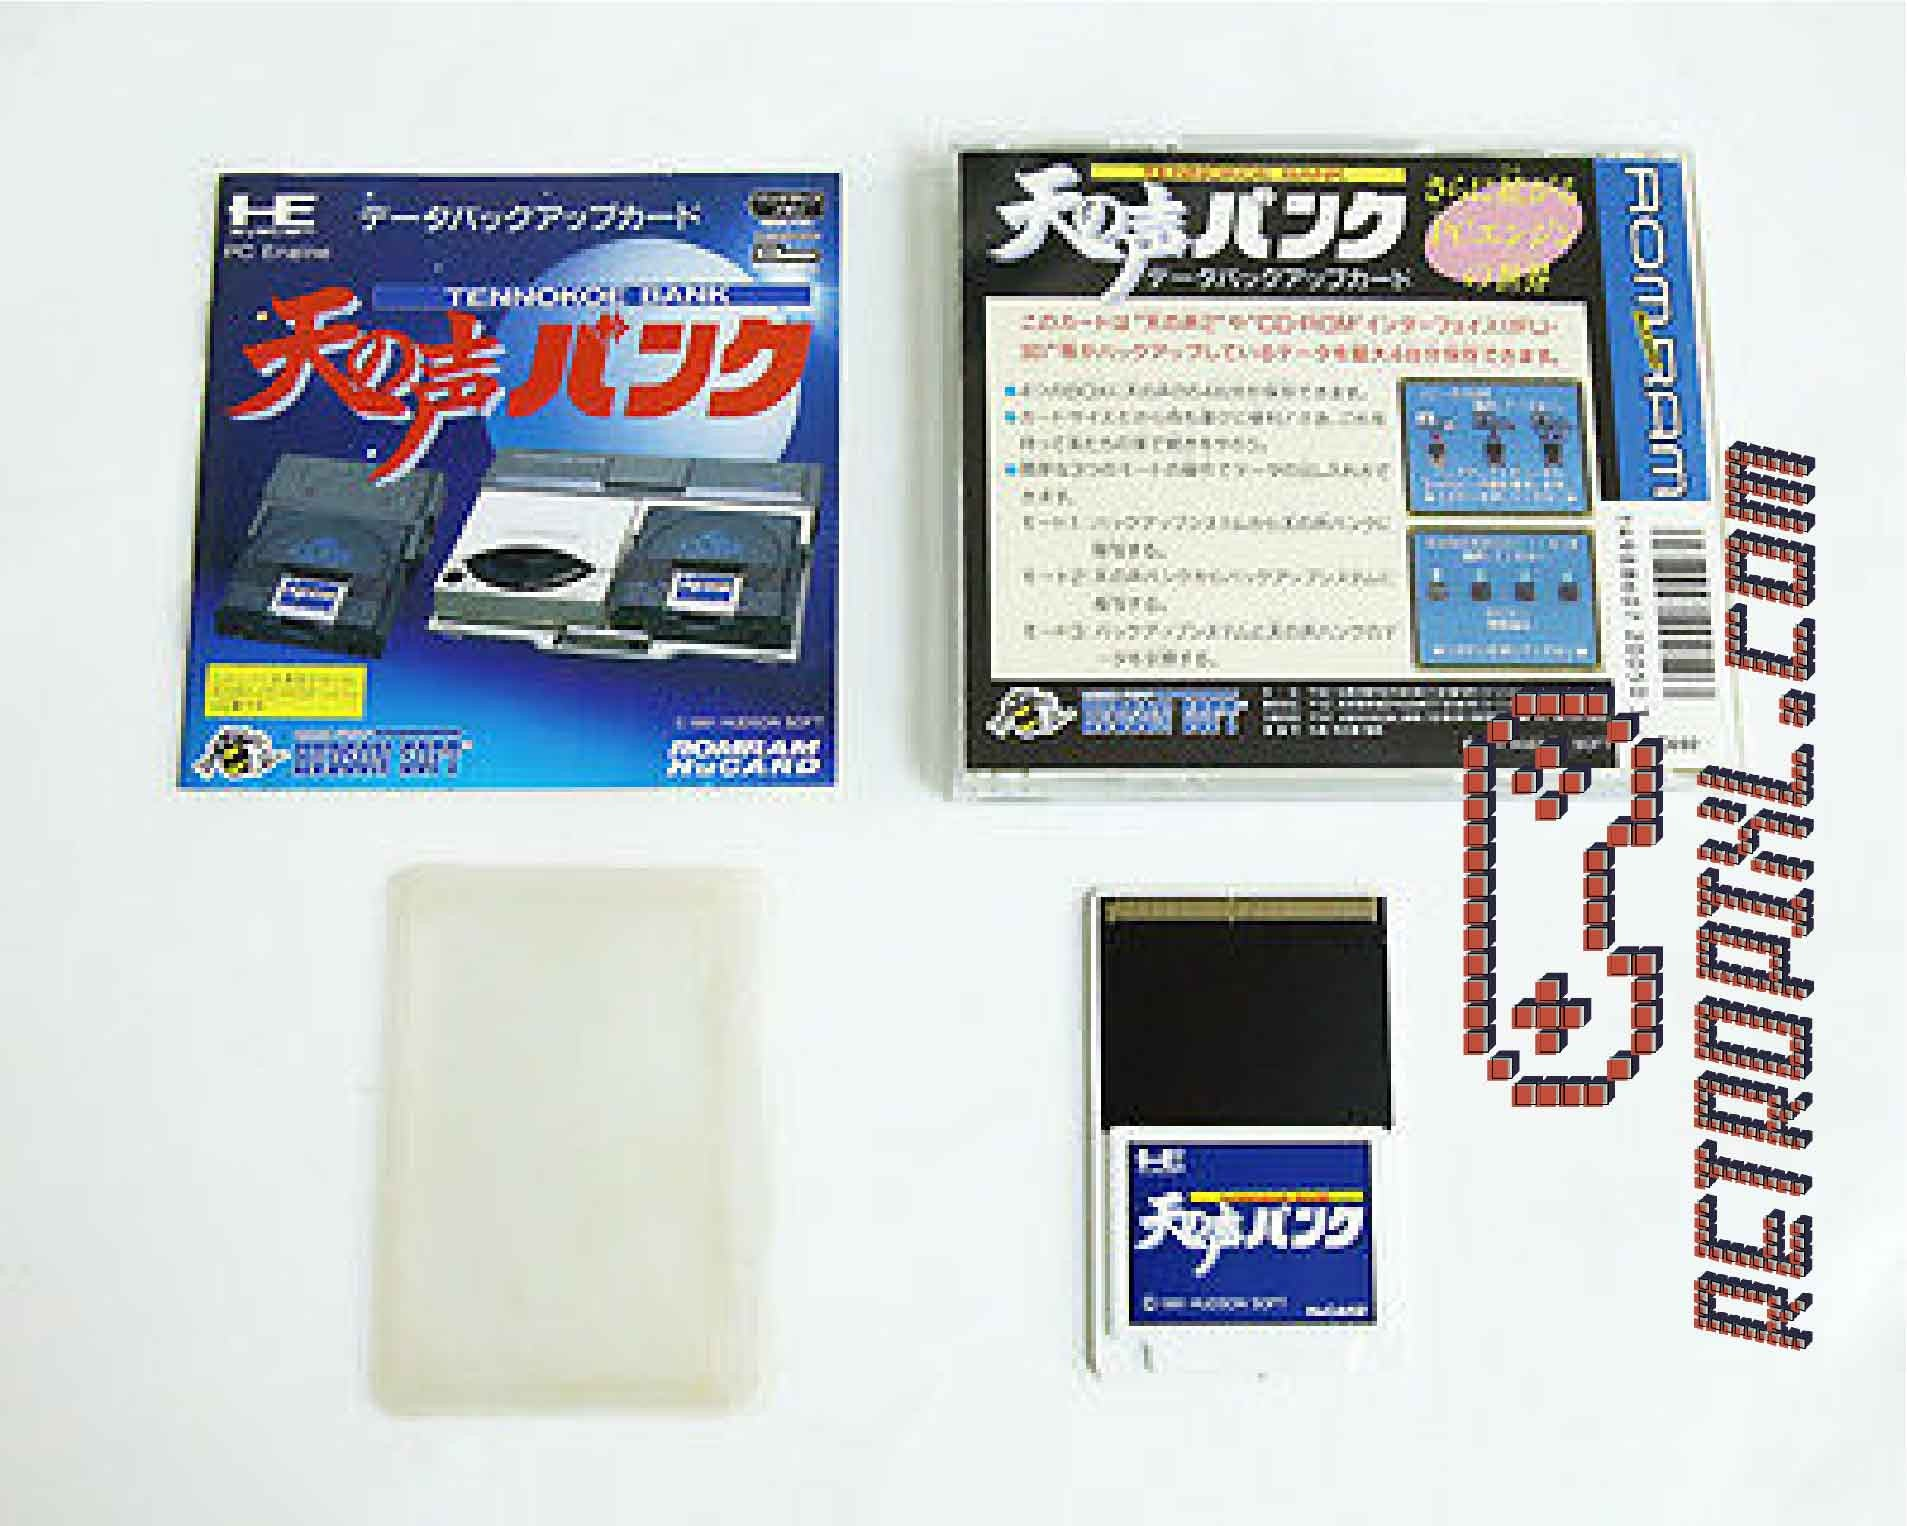 Nec Pc-Engine System Card Ten No Koe Bank Rom Ram HuCARD (RAM Extension)